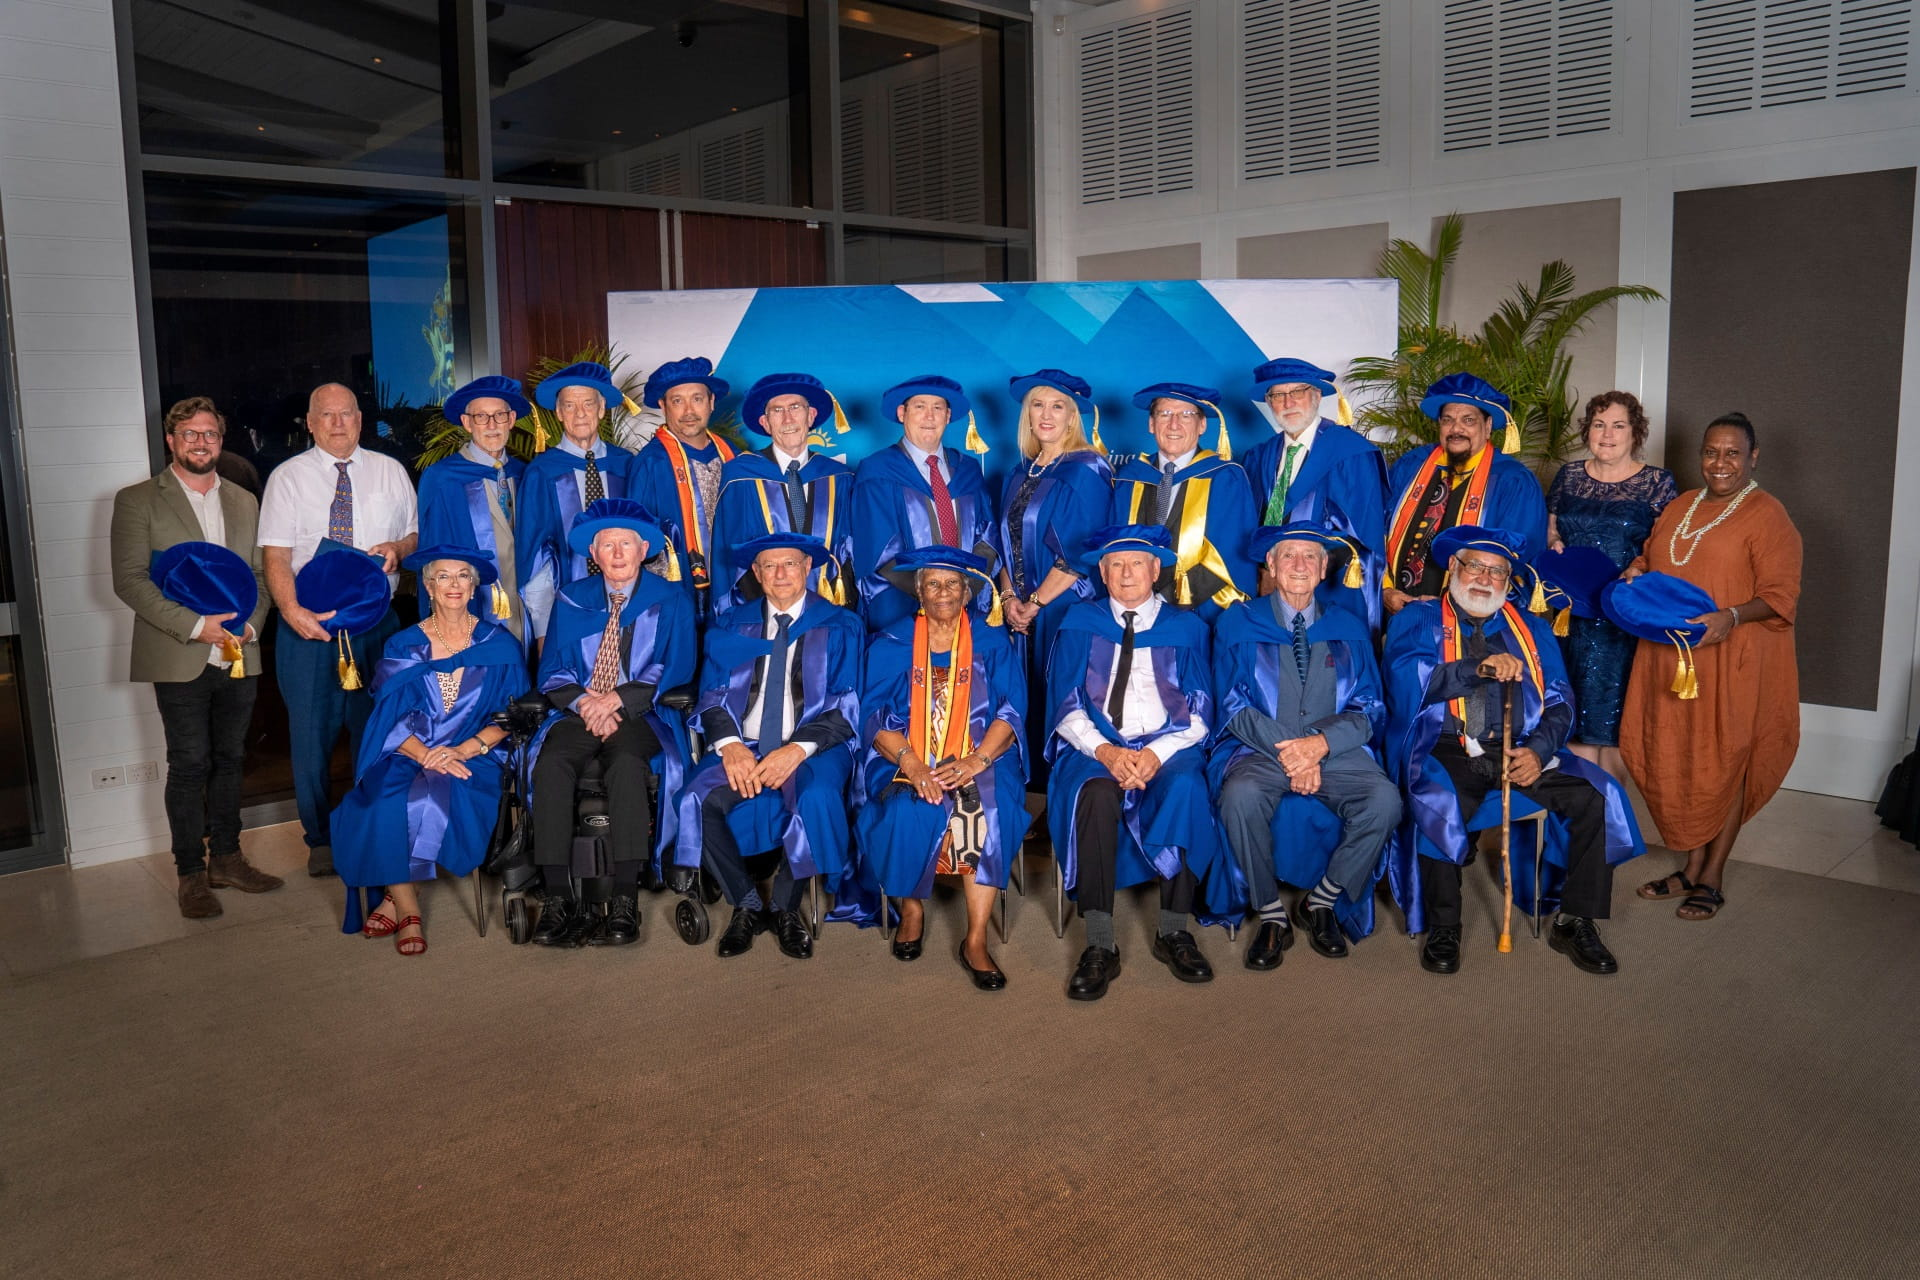 2021 Honorary Doctorate Award Recipients